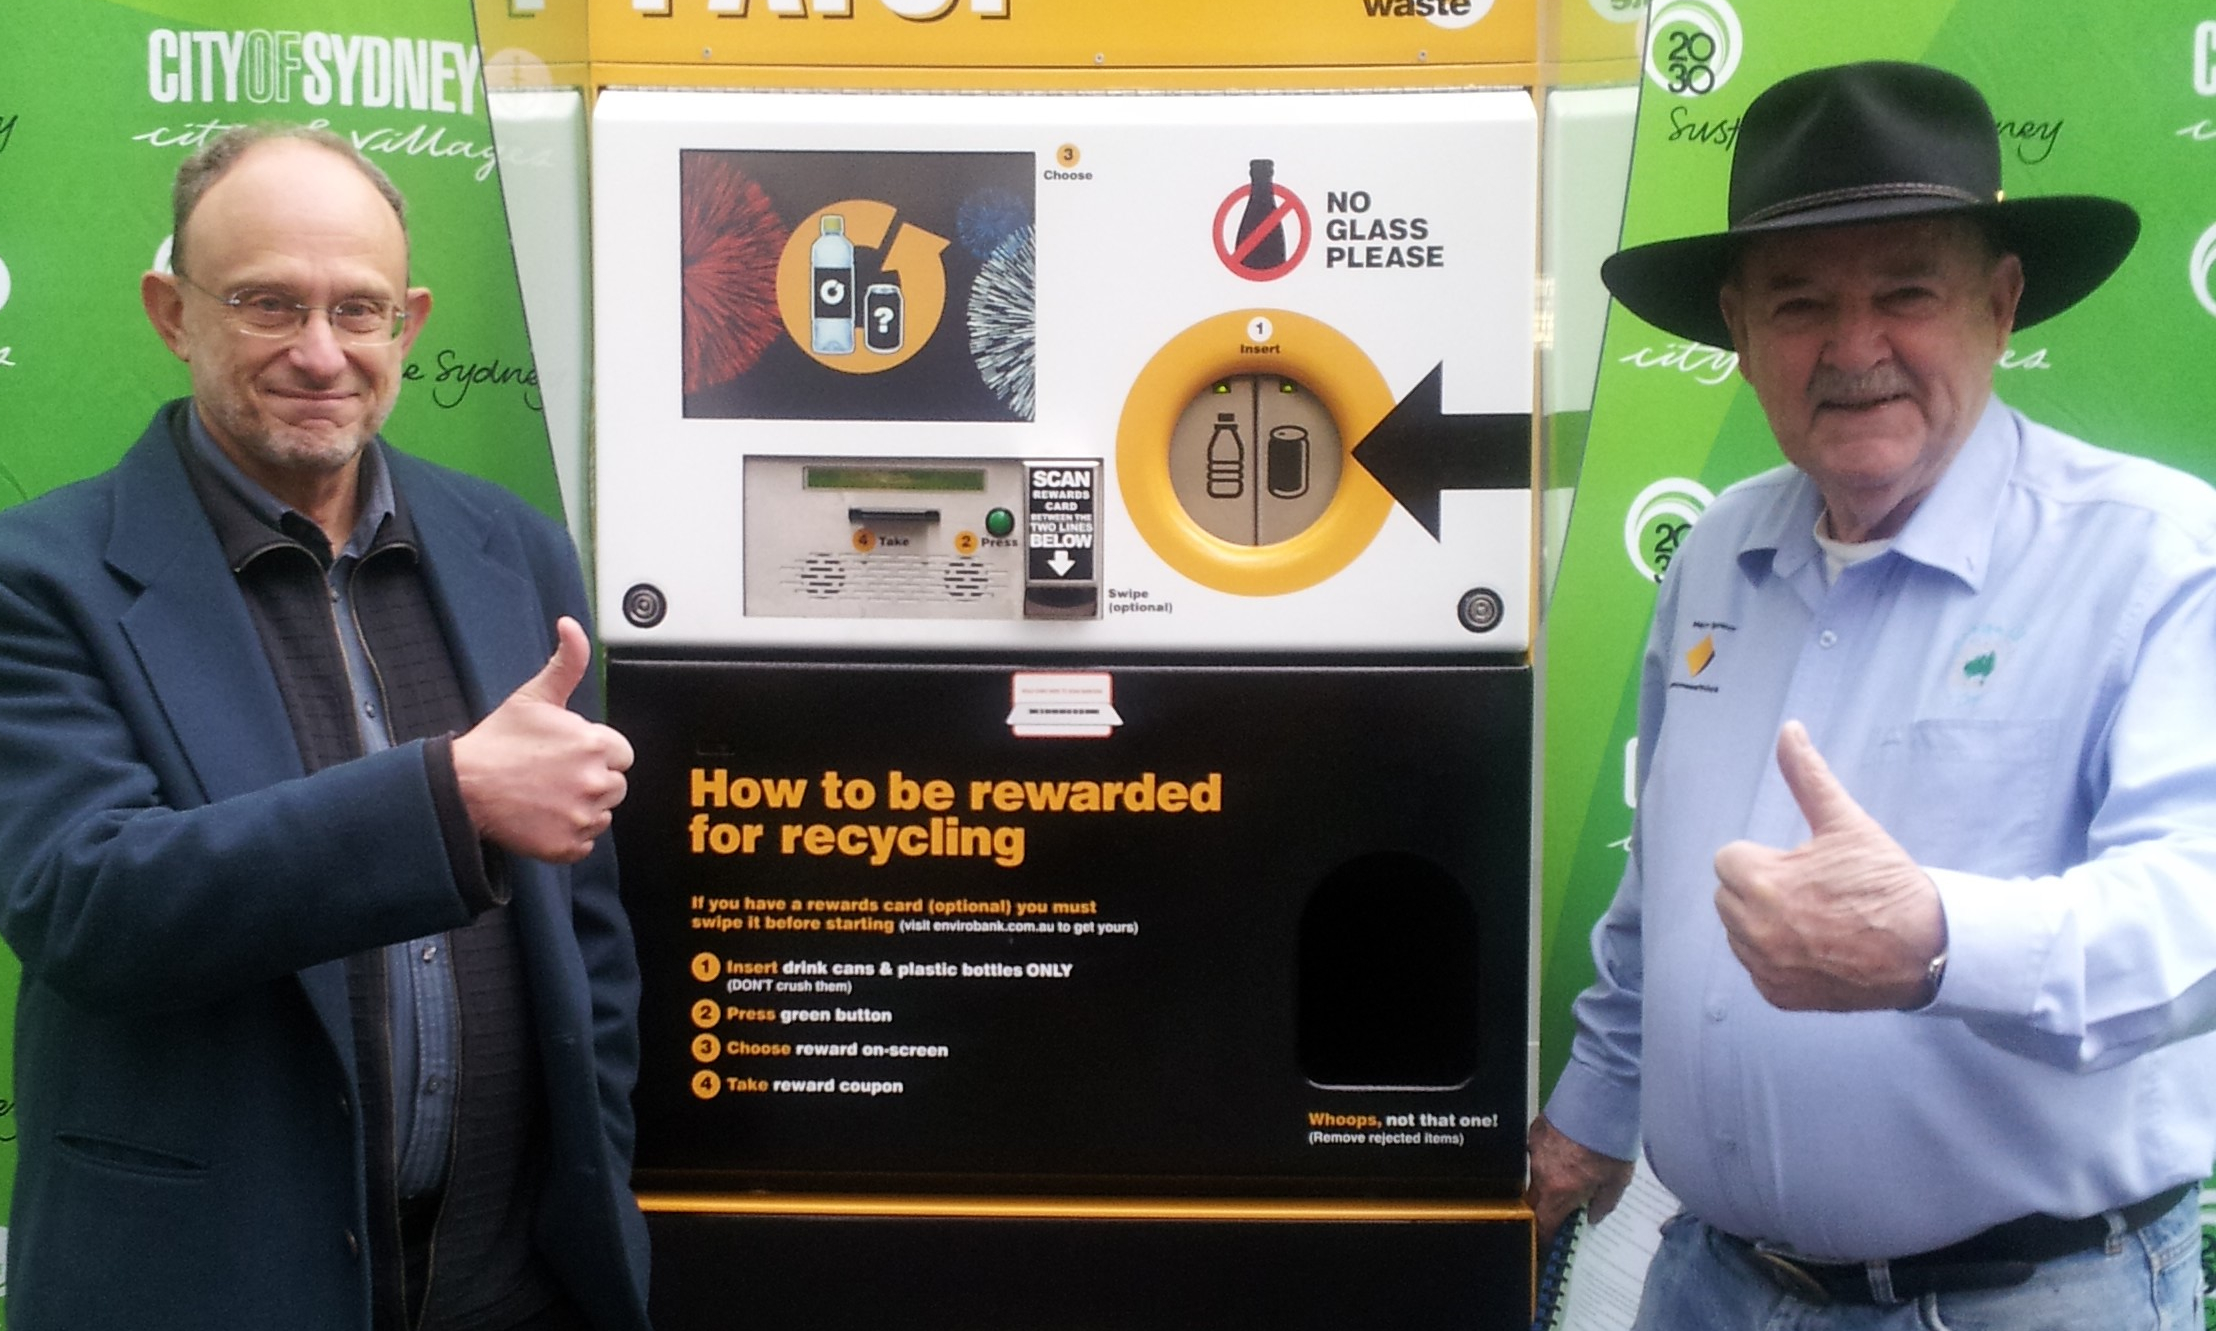 Ian Kiernan & Jeff Angel - Cash for Containers campaign